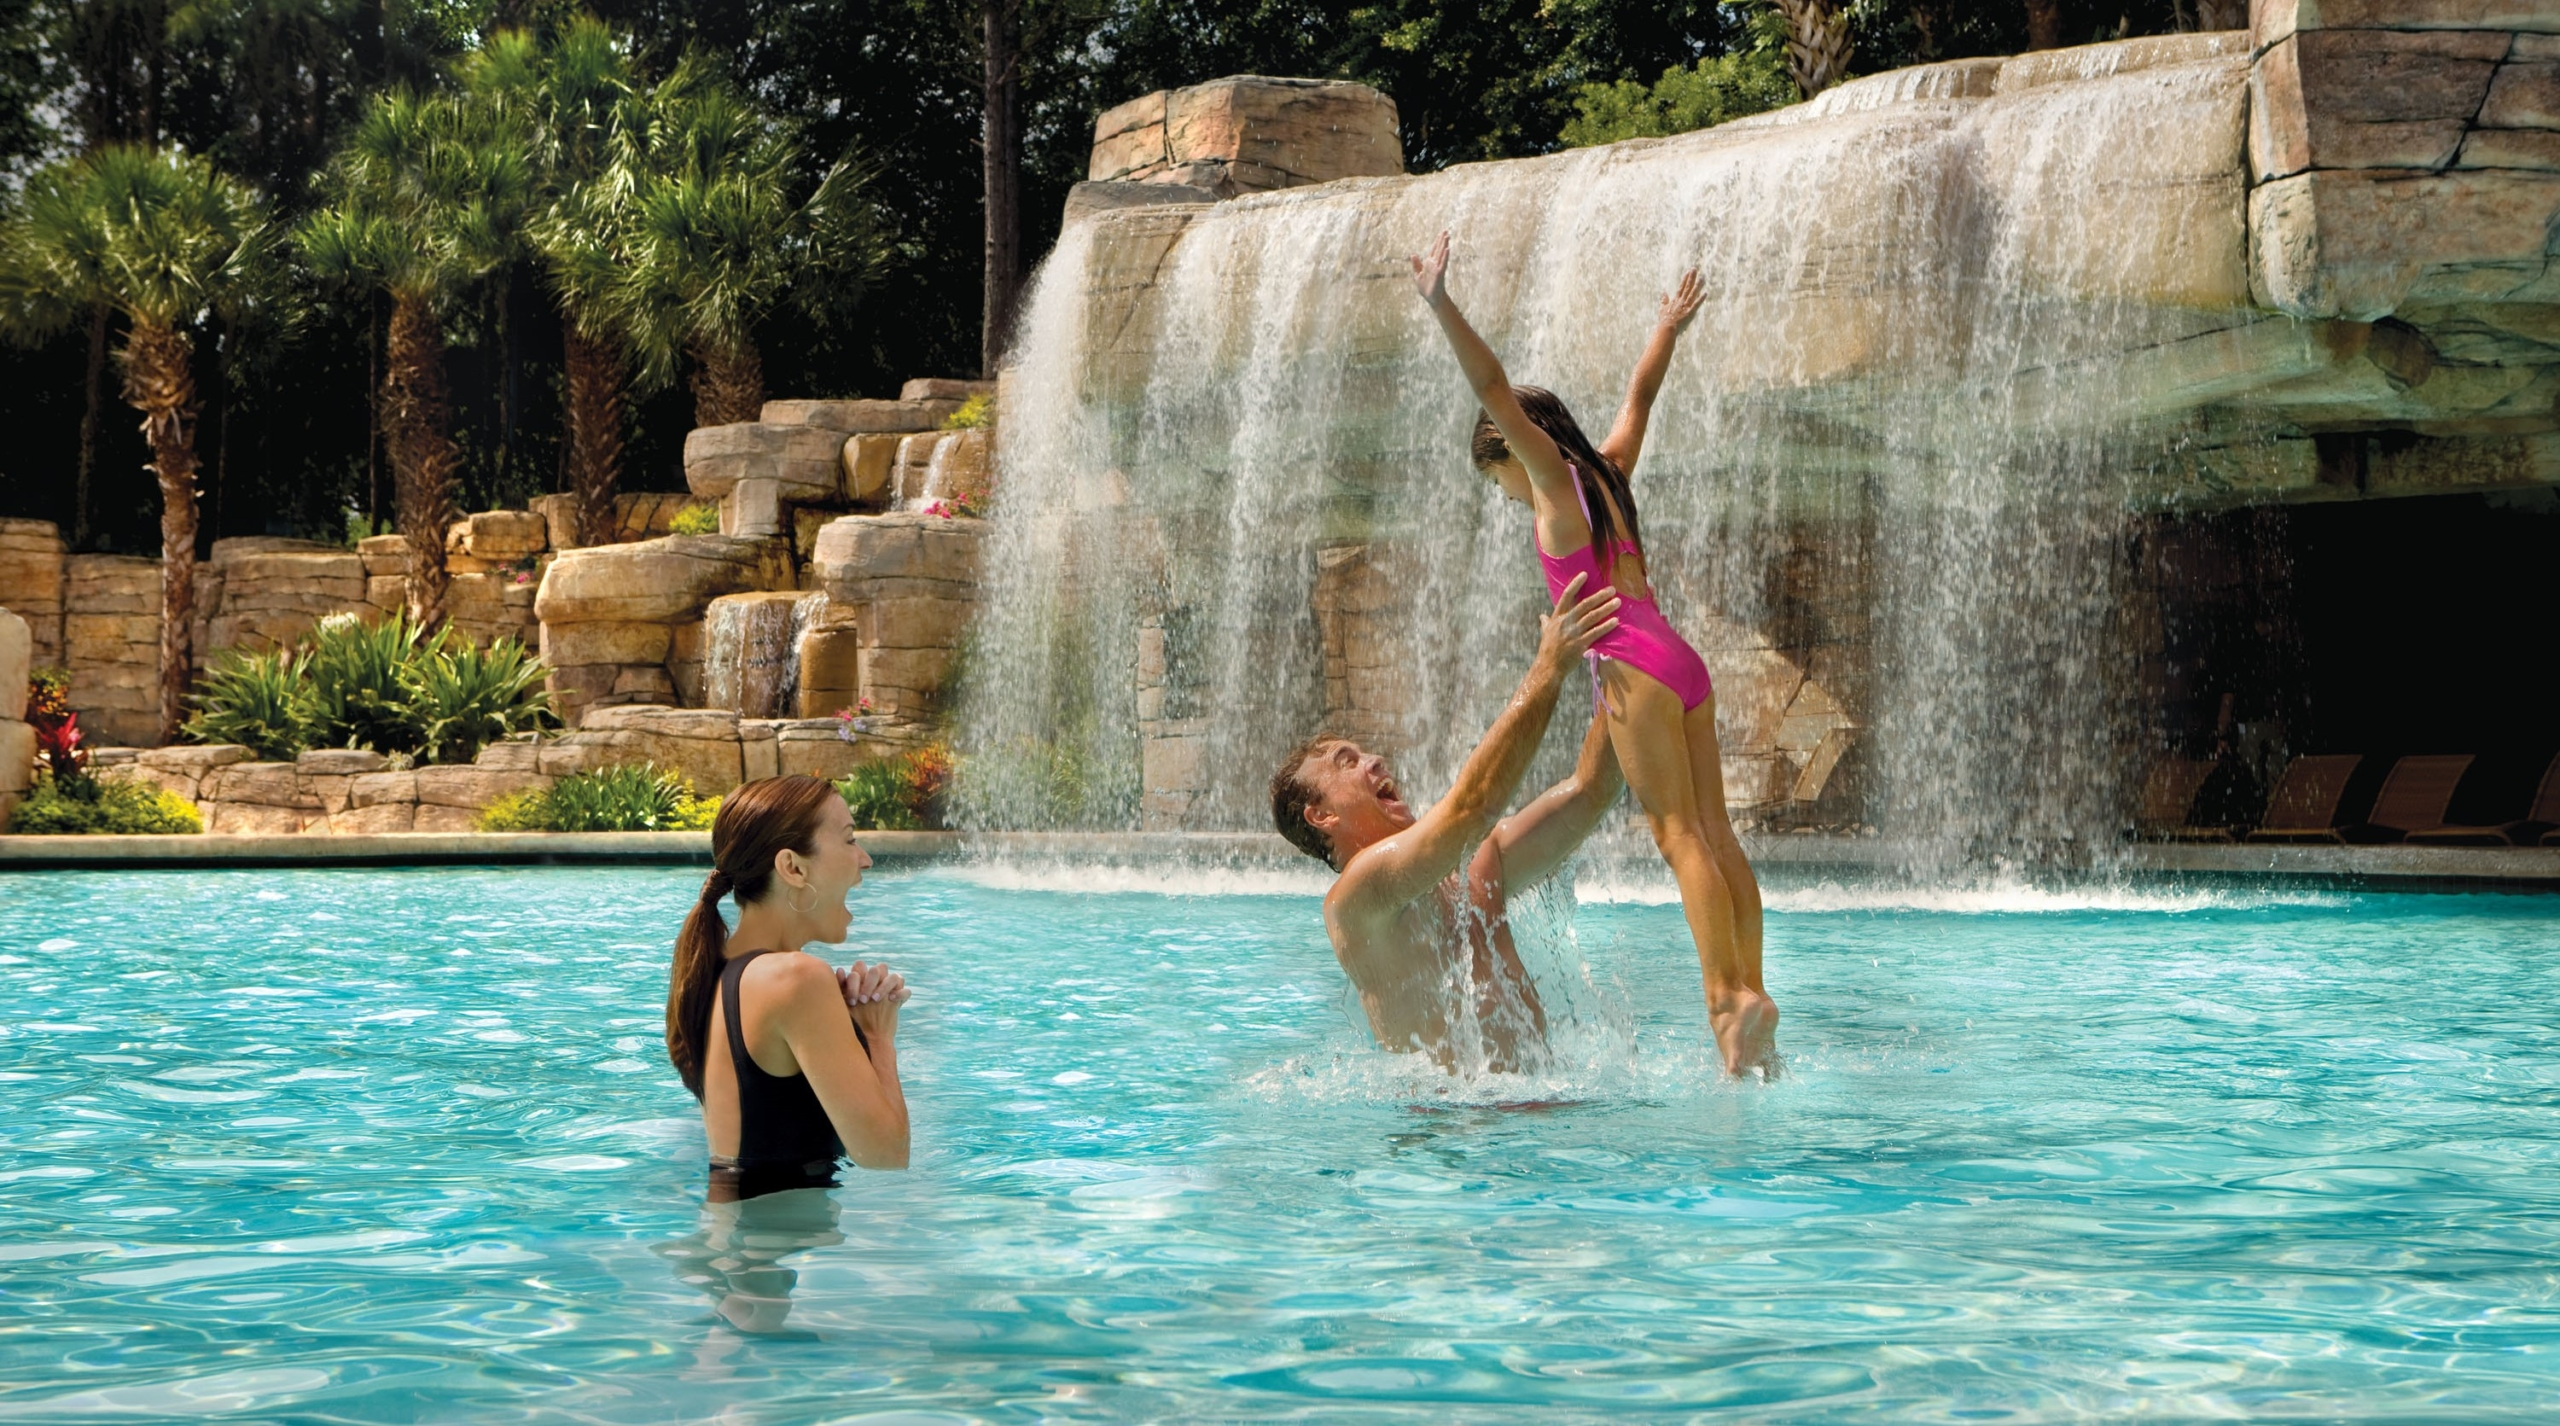 Dad throwing his daughter in the air in the grotto pool.